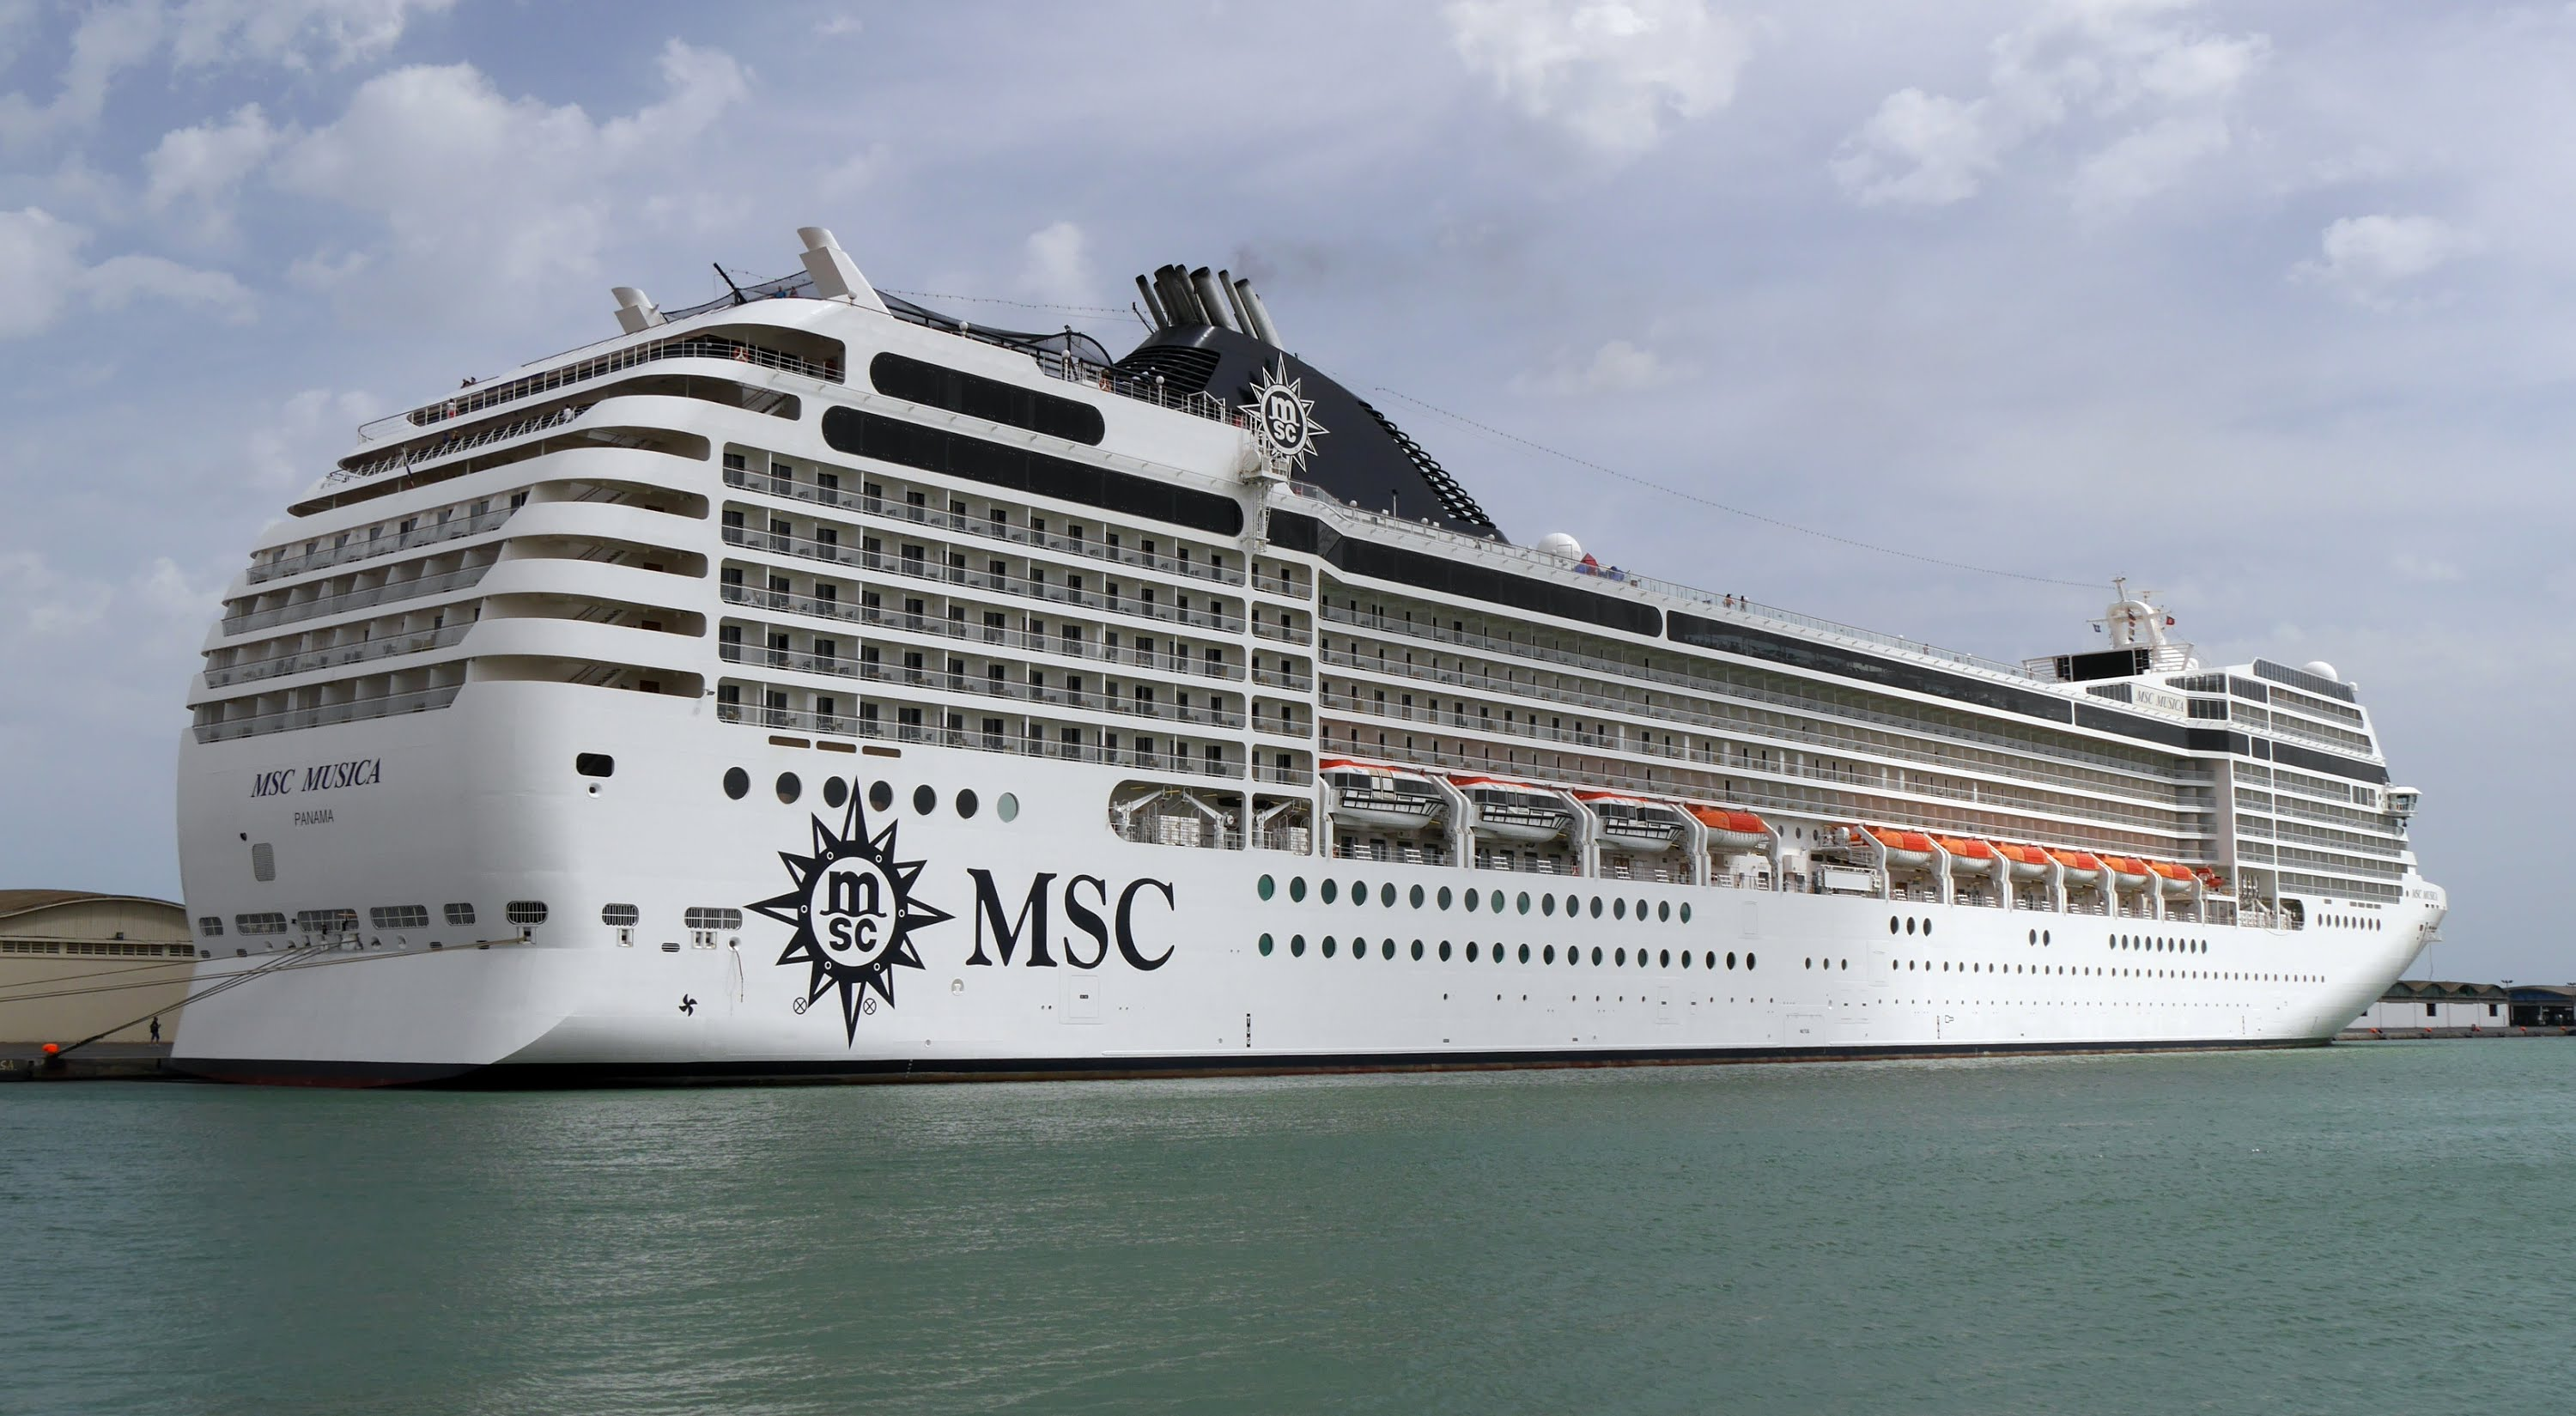 Apply for a job on a ship like the MSC Musica